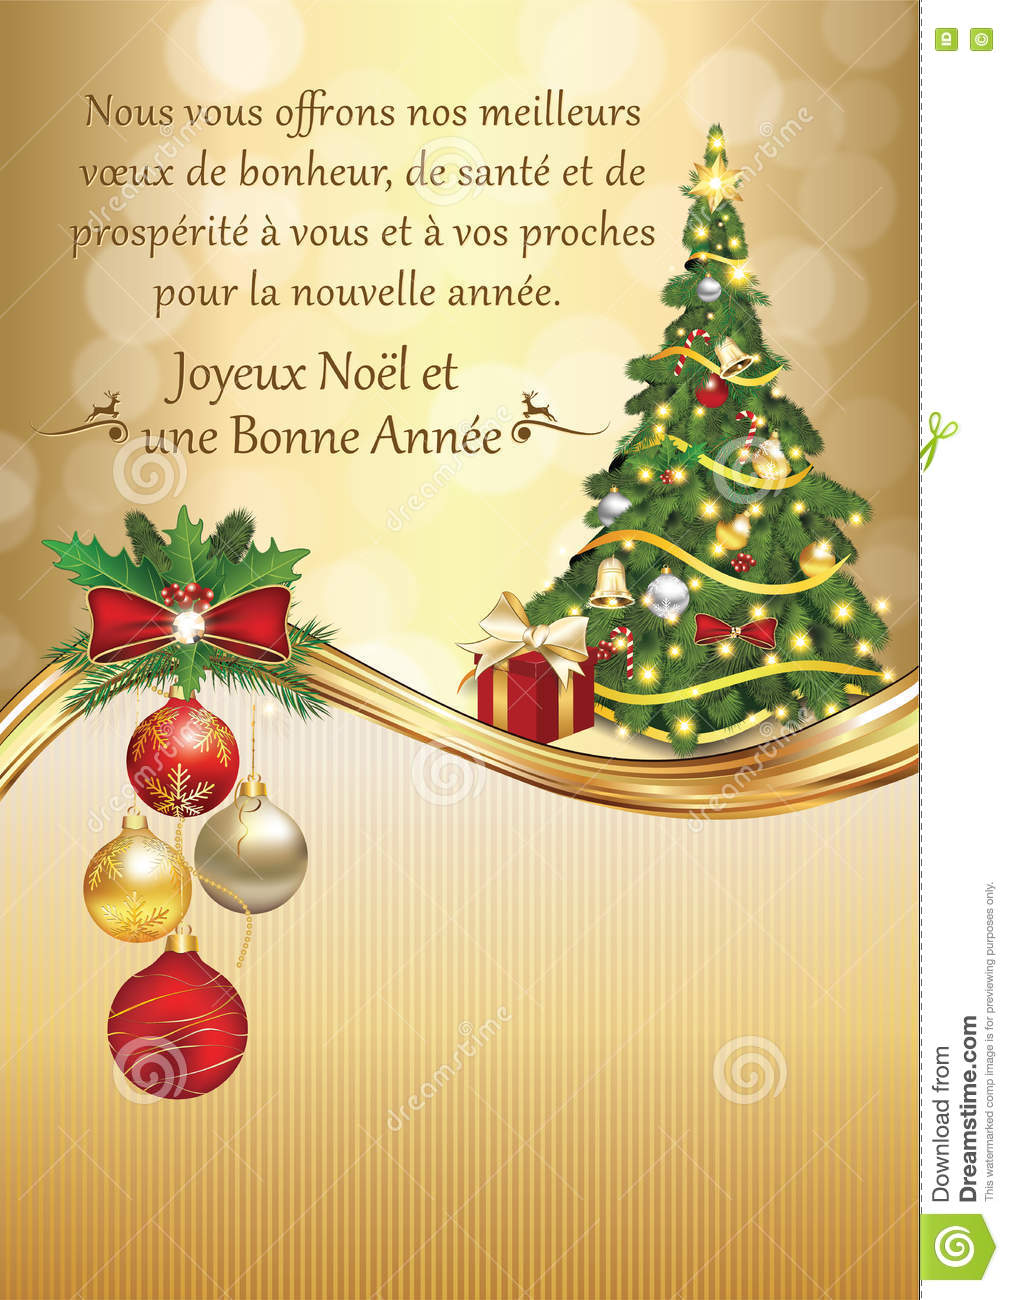 French seasons greetings for new year stock illustration french seasons greetings for new year stock illustration illustration of print year 81548307 m4hsunfo